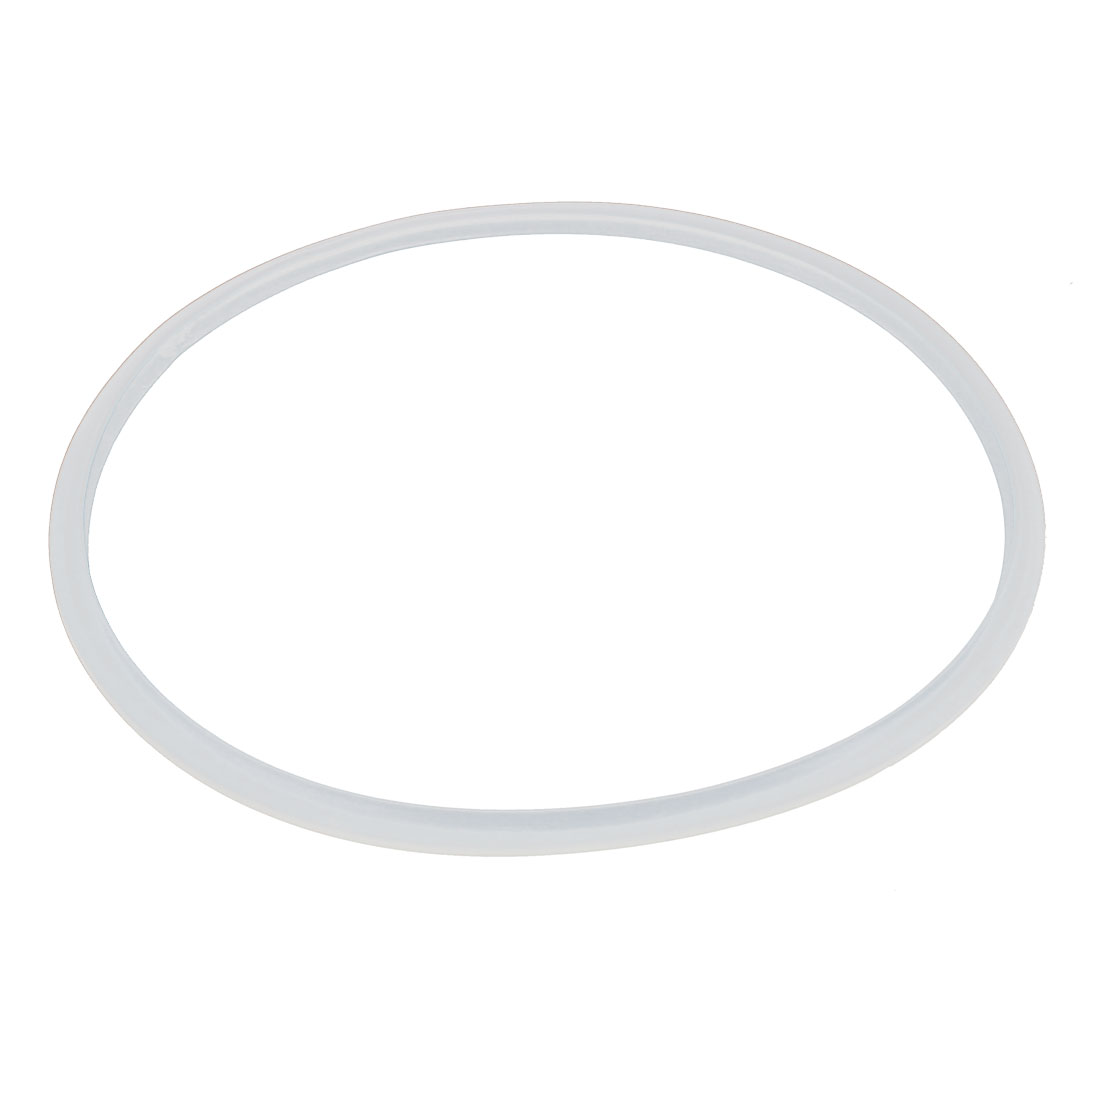 34cm x 32cm Clear White Rubber Seal Ring Replacement for Pressure Cooker